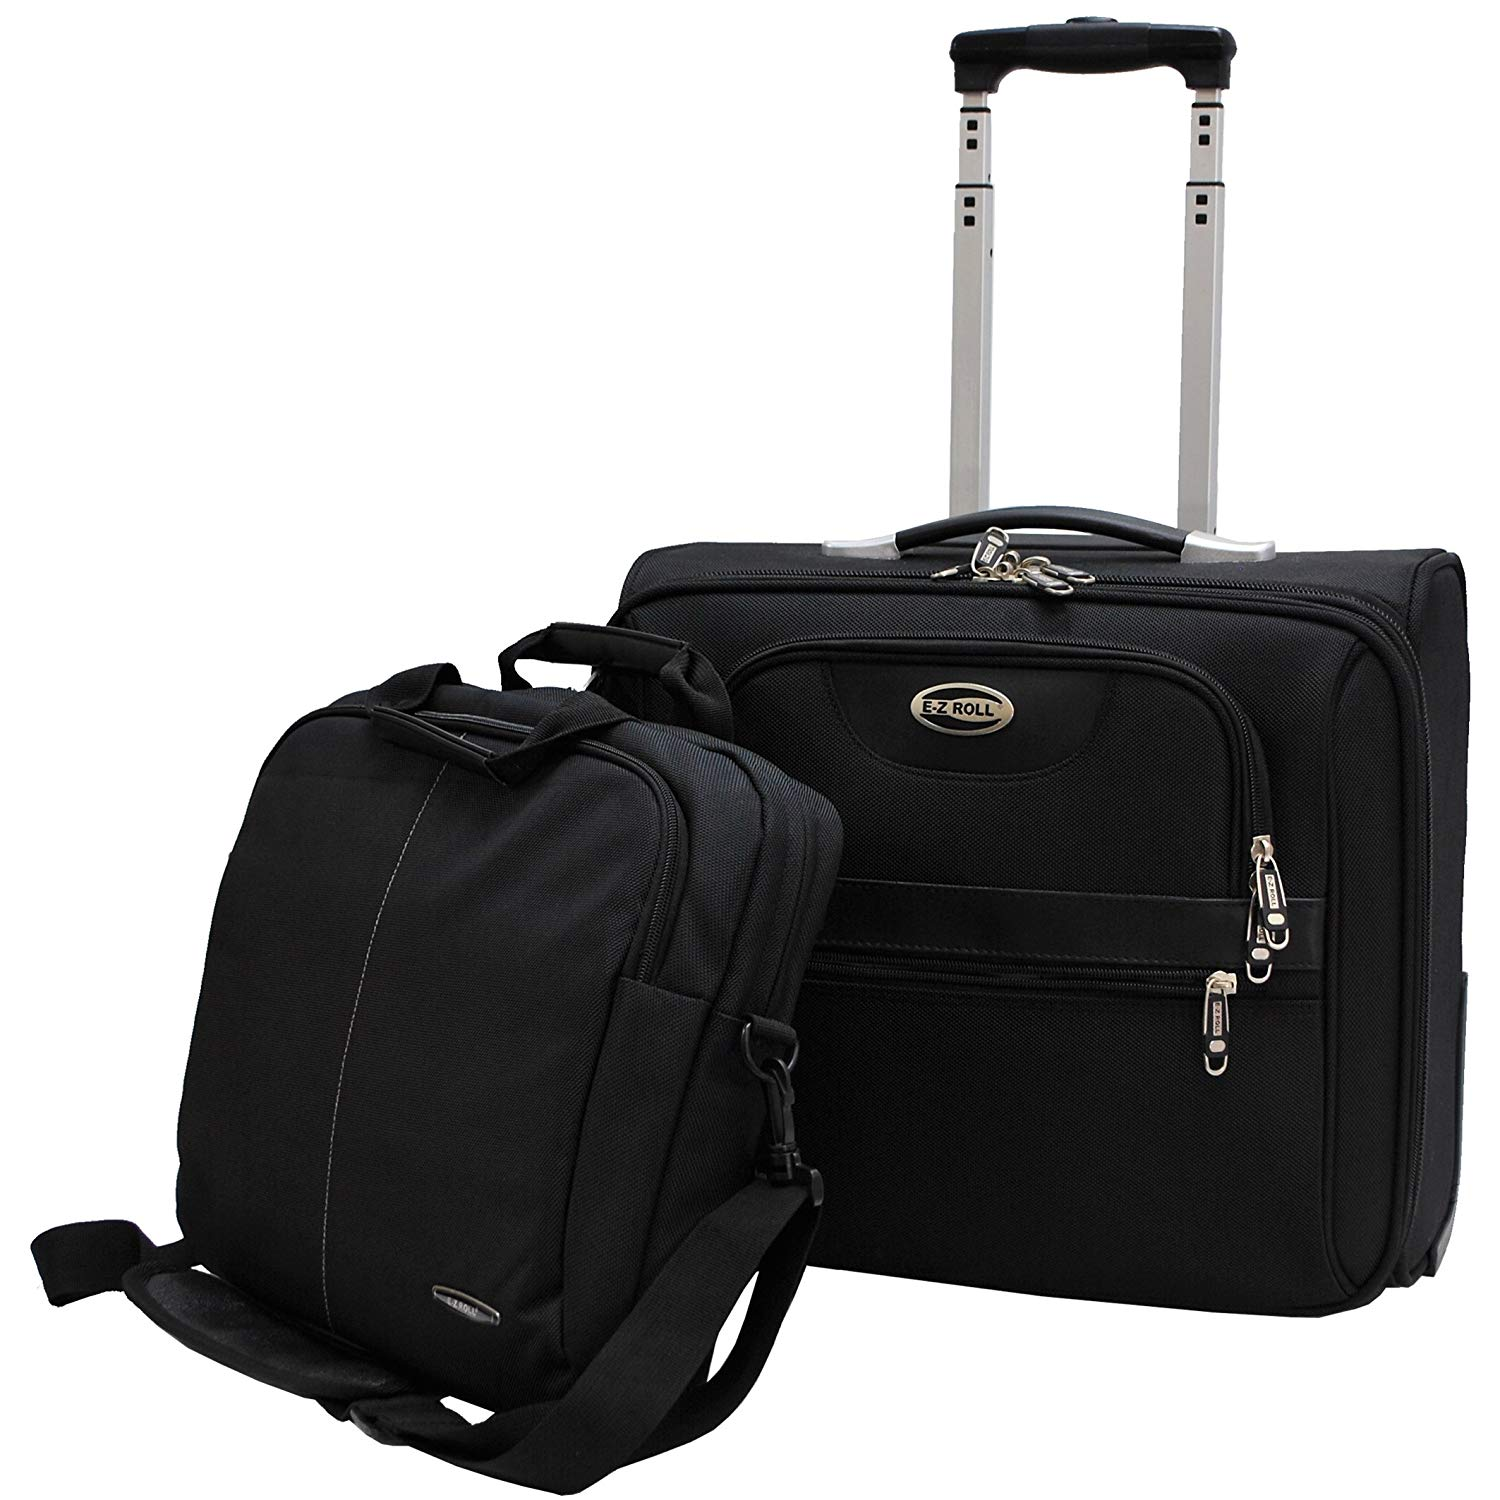 204aa0c368bd Get Quotations · E-Z Roll Brand Rolling Laptop Bag Business Briefcase W  Computer Shoulder BagBrand Rolling Laptop